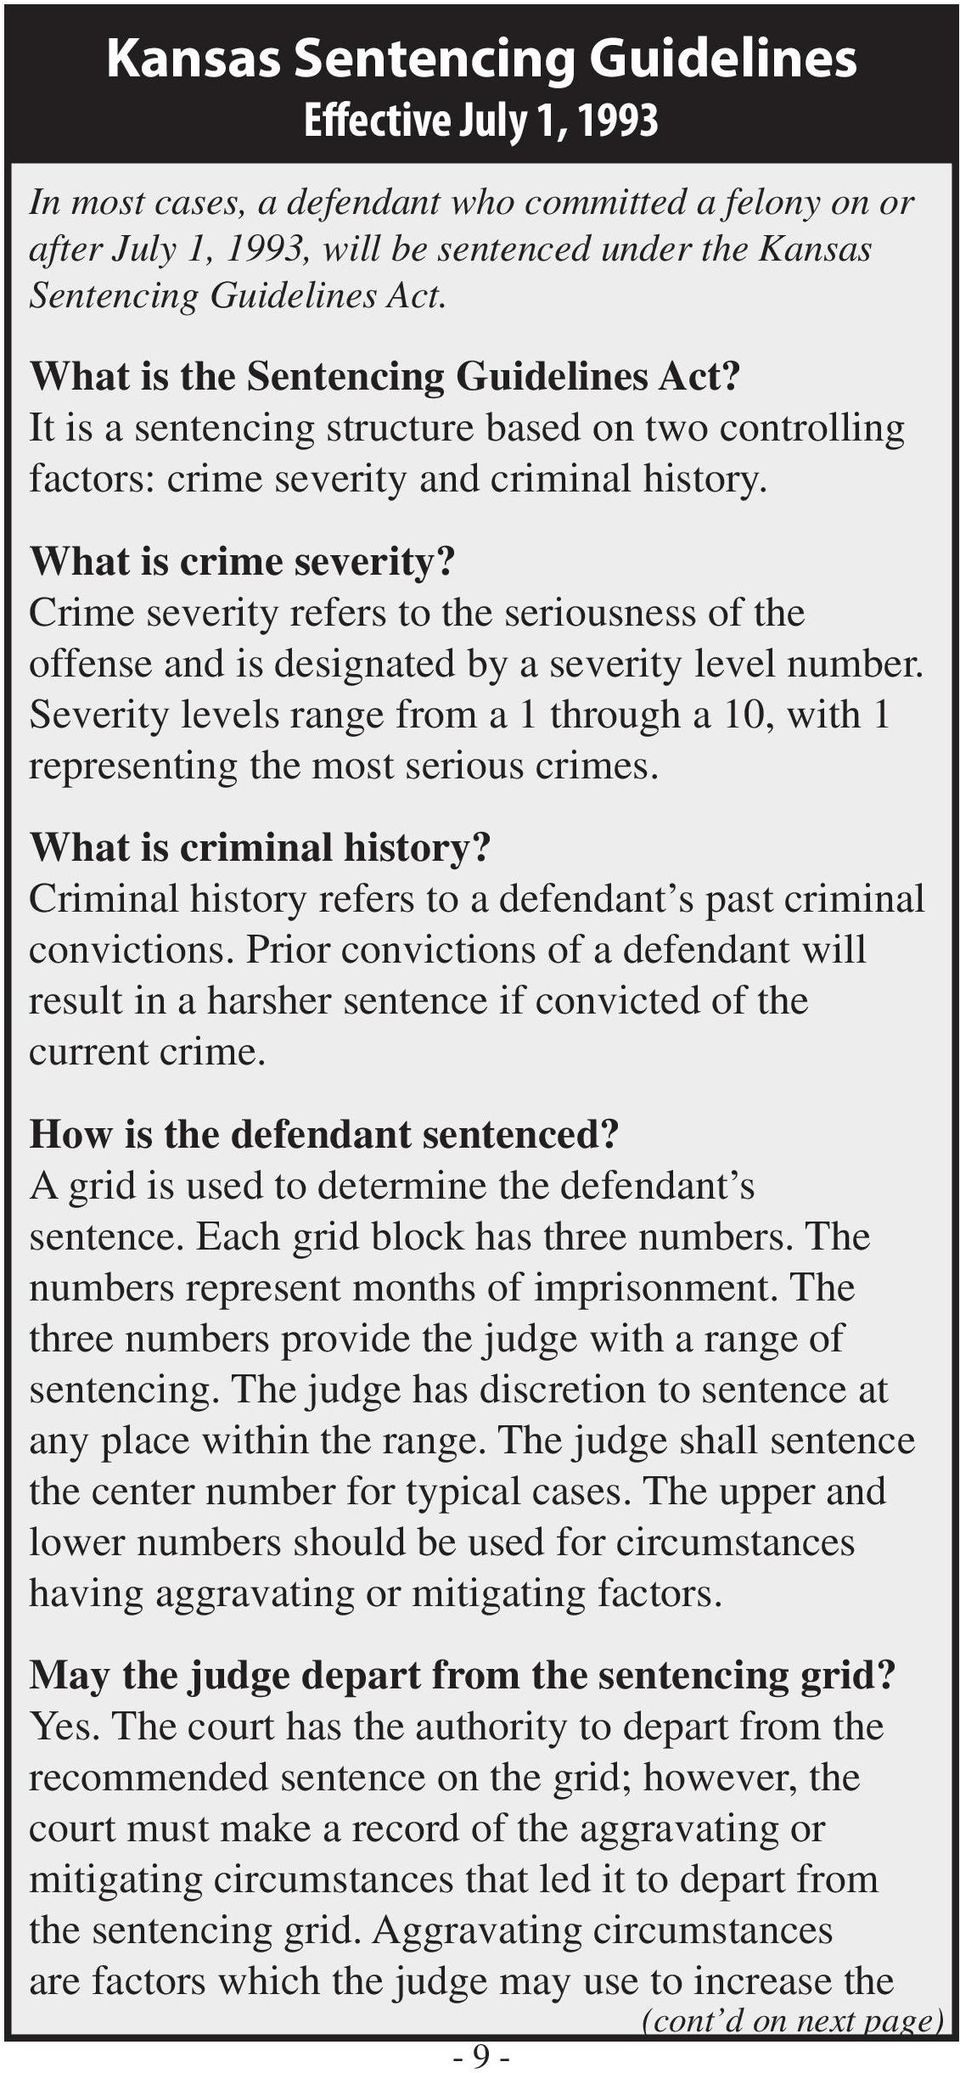 Crime severity refers to the seriousness of the offense and is designated by a severity level number. Severity levels range from a 1 through a 10, with 1 representing the most serious crimes.